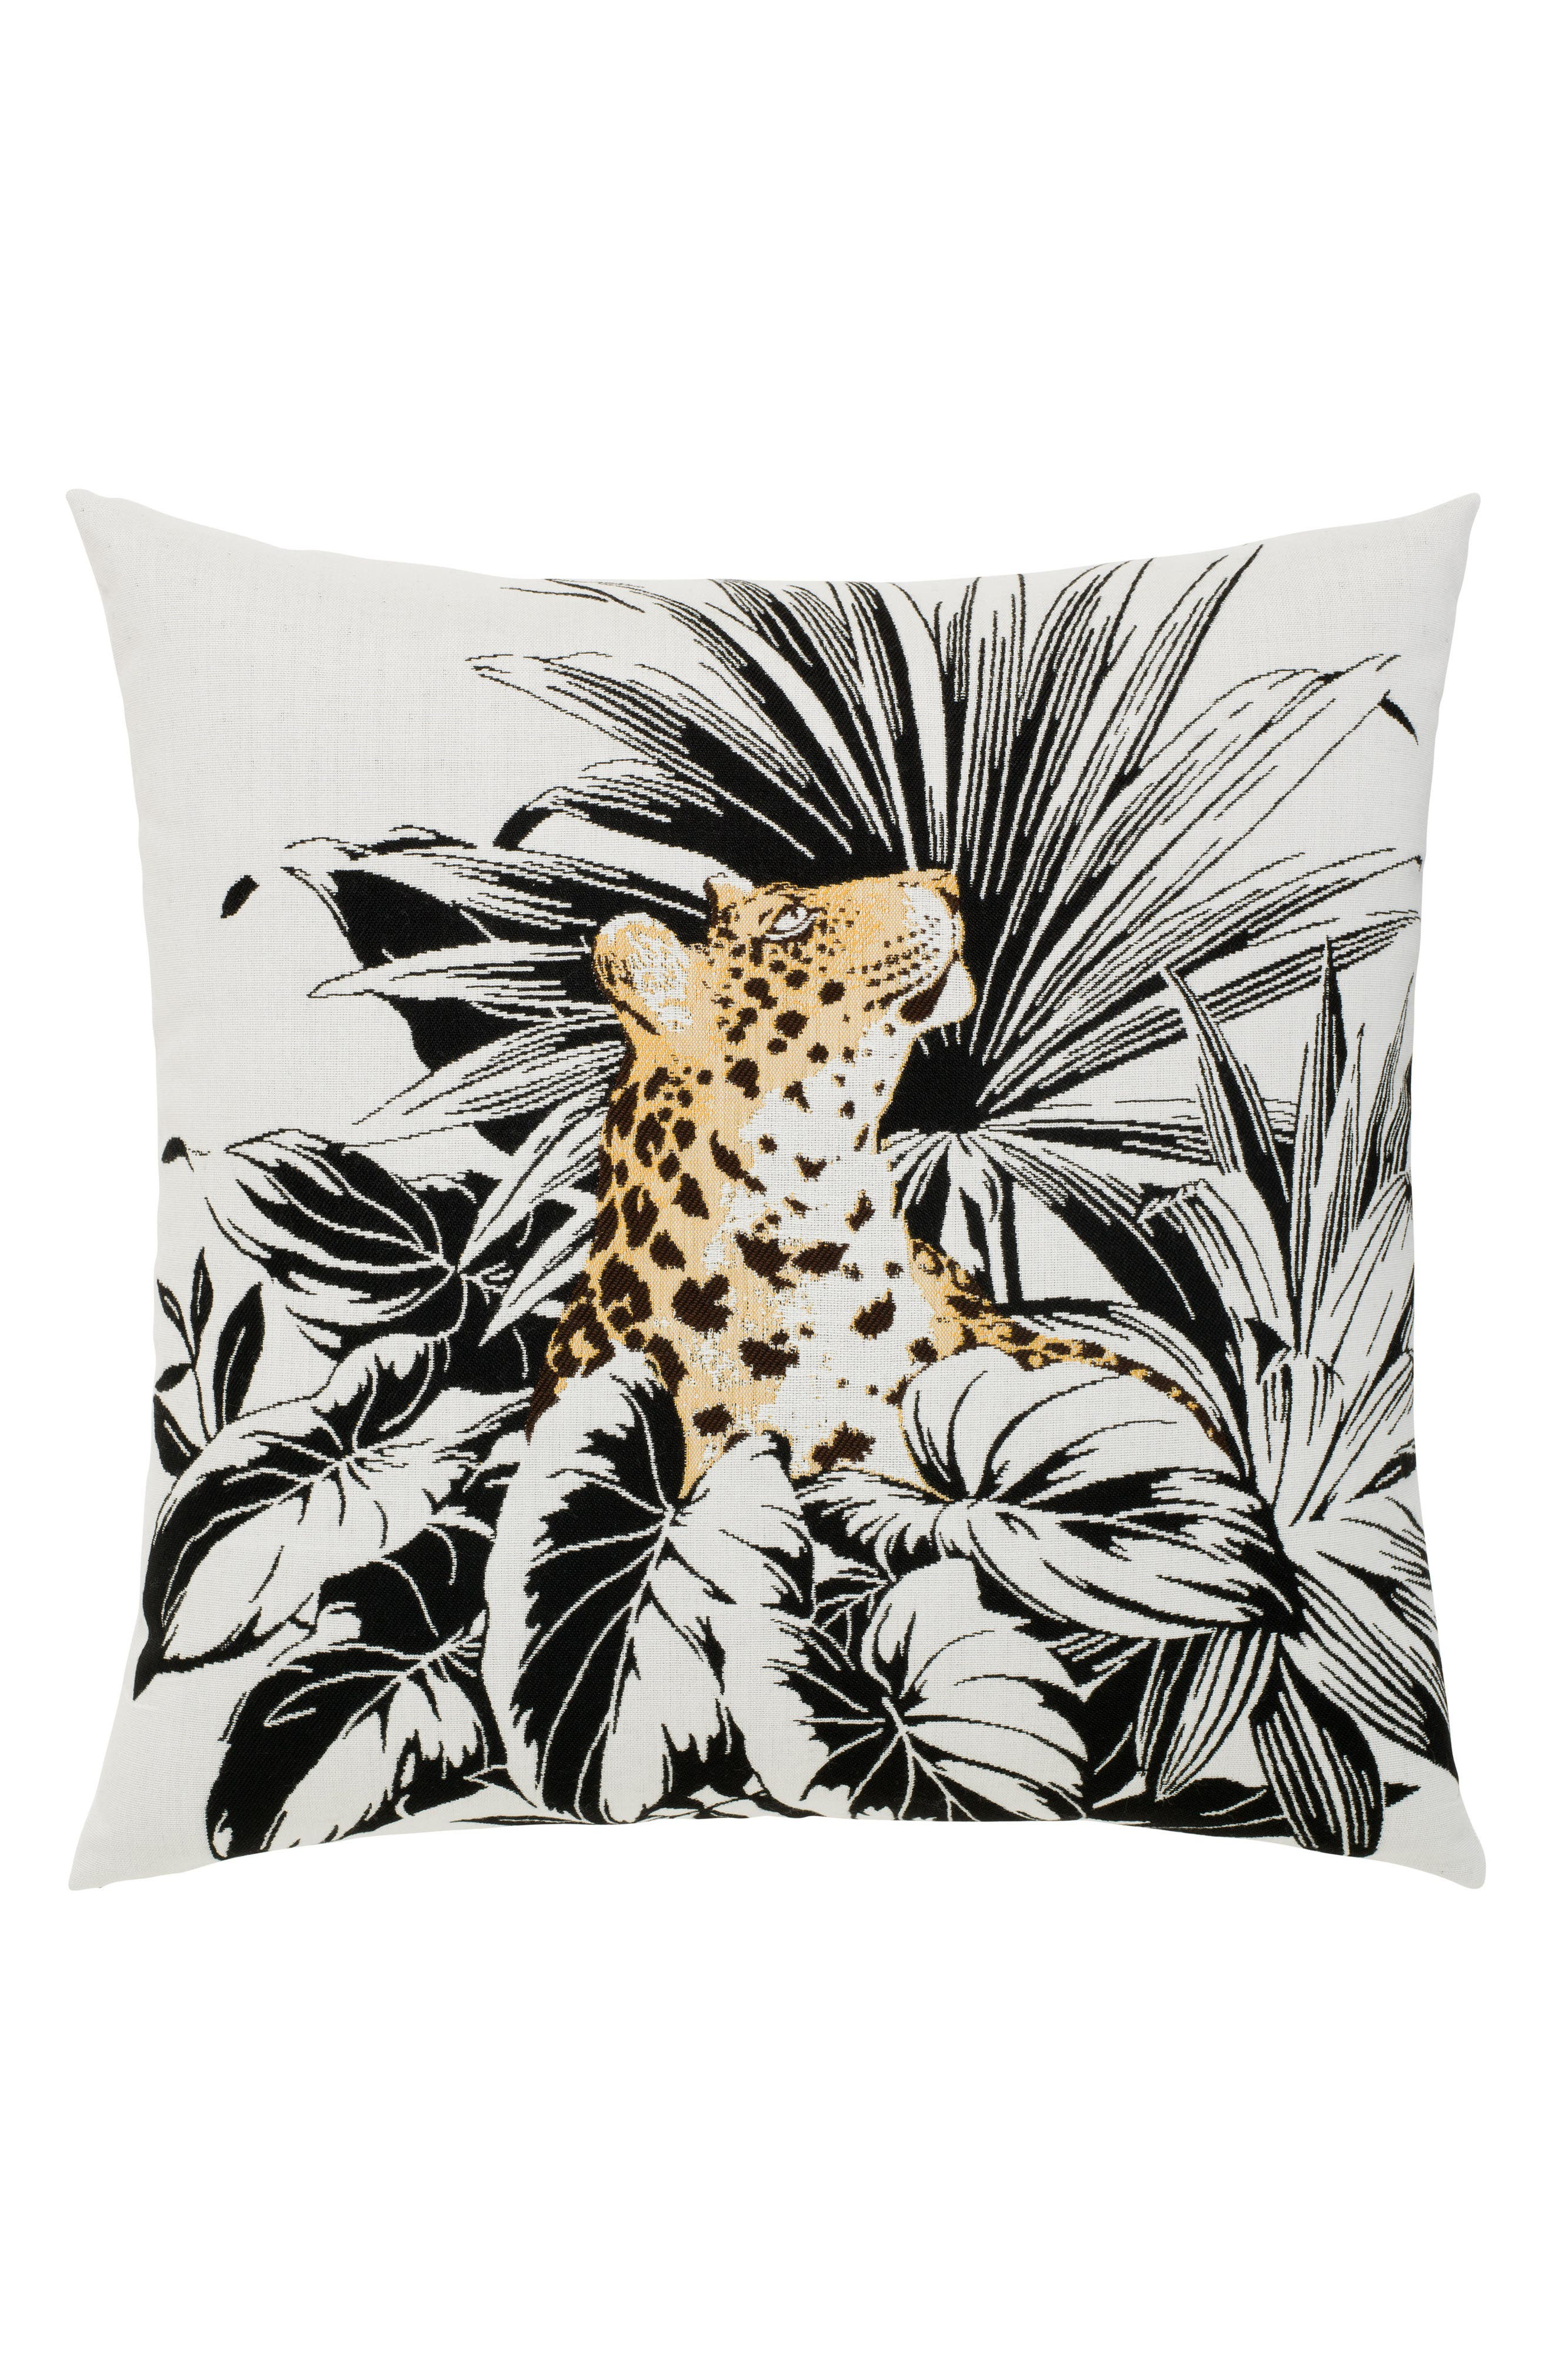 Main Image - Elaine Smith Jungle Leopard Indoor/Outdoor Accent Pillow